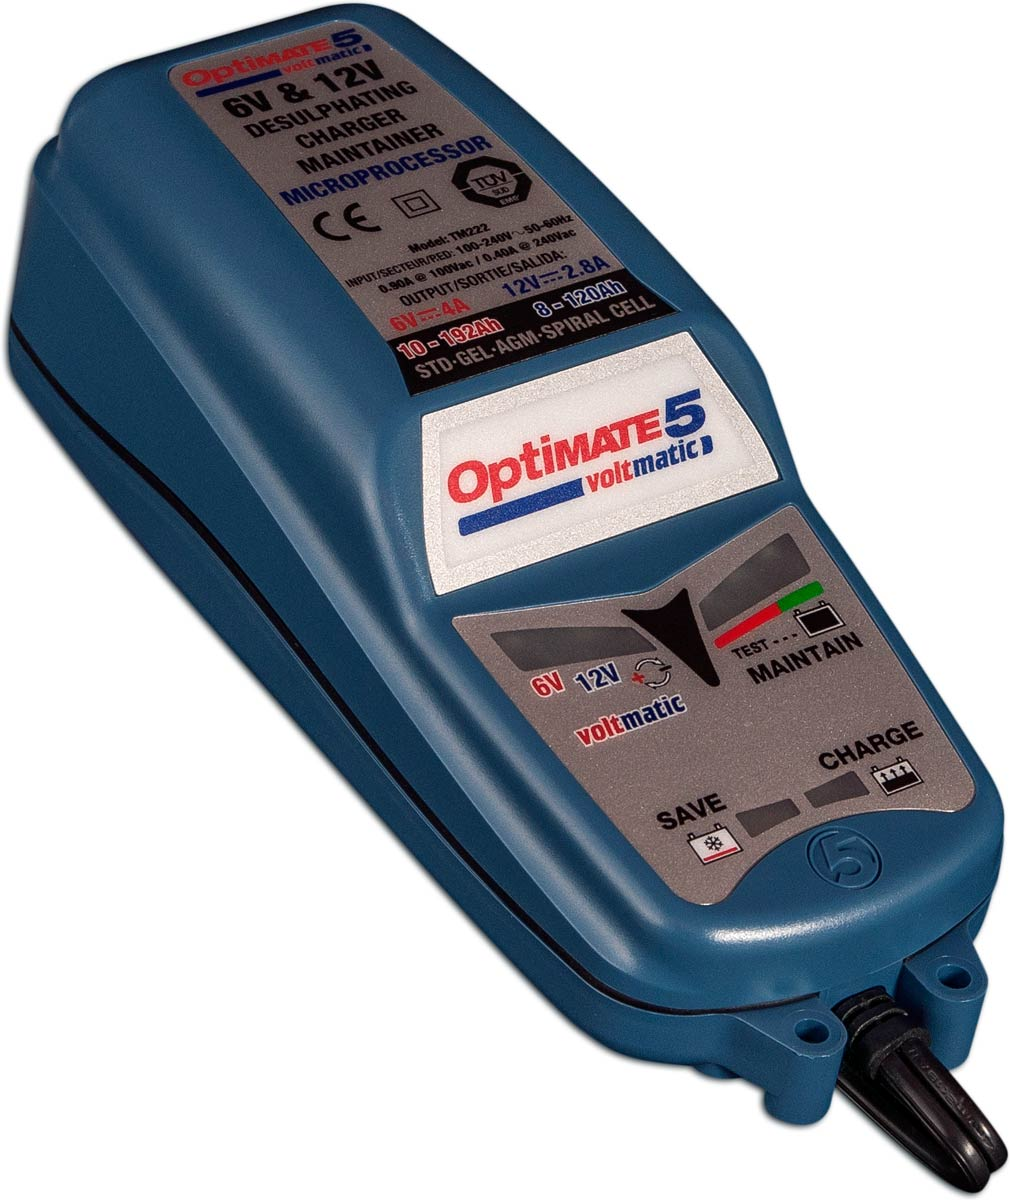 L'outil TecMate OptiMate 5 Voltmatic permet de recharger les batteries